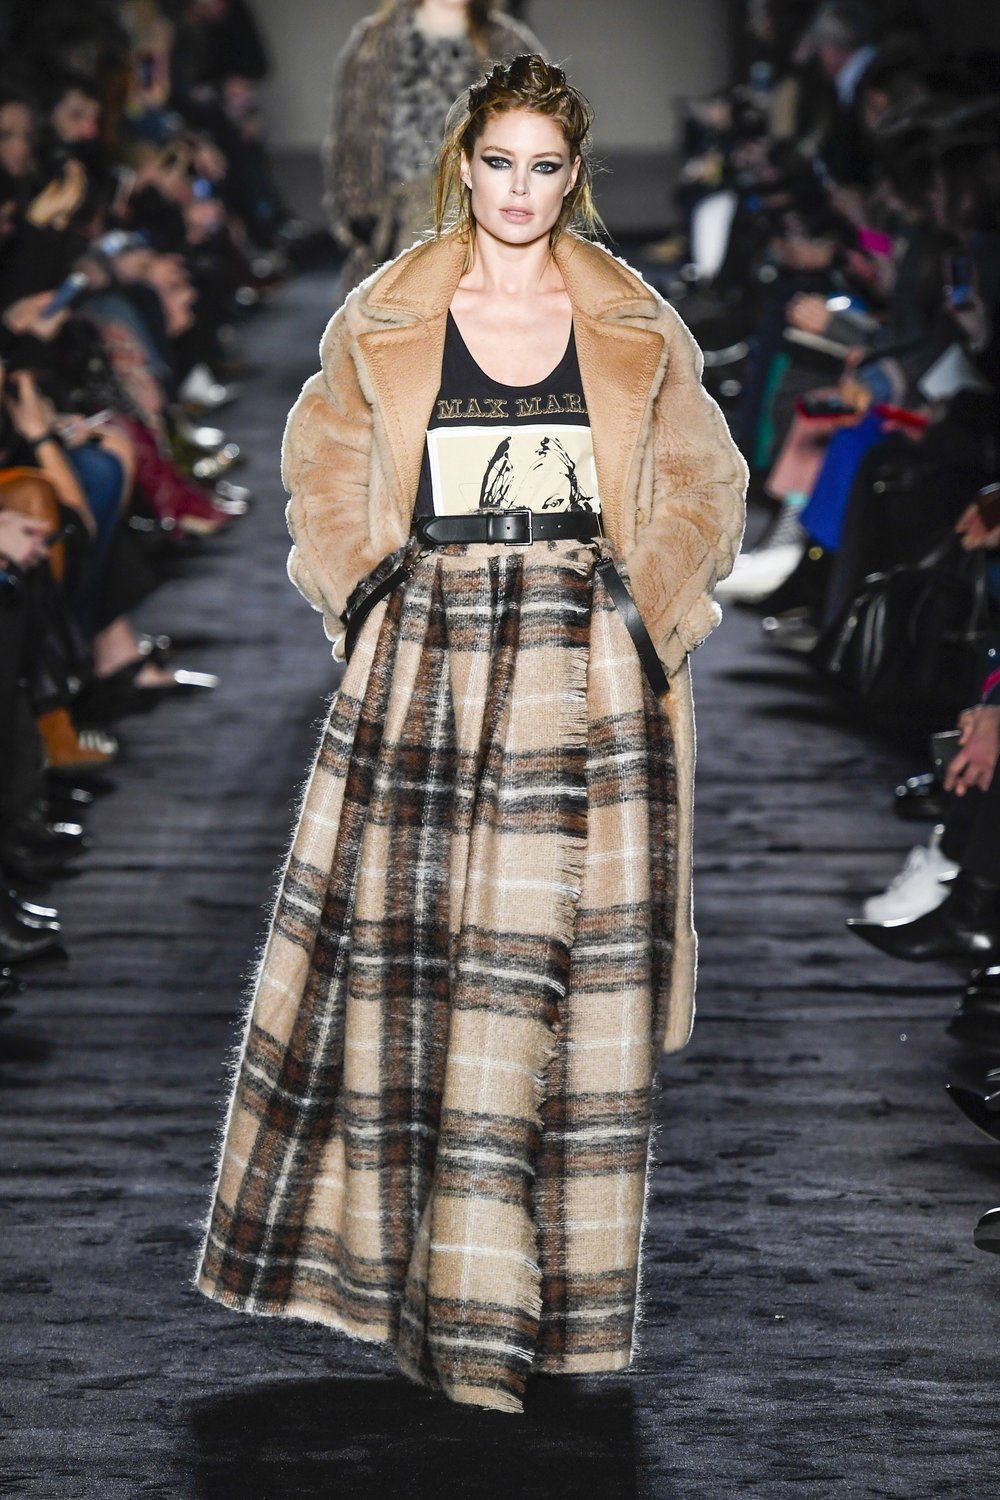 Max Mara Ready-to-Wear Fall 2018  - I'm loving this skirt - it's eveningwear that's quite relaxed, just the way I like it